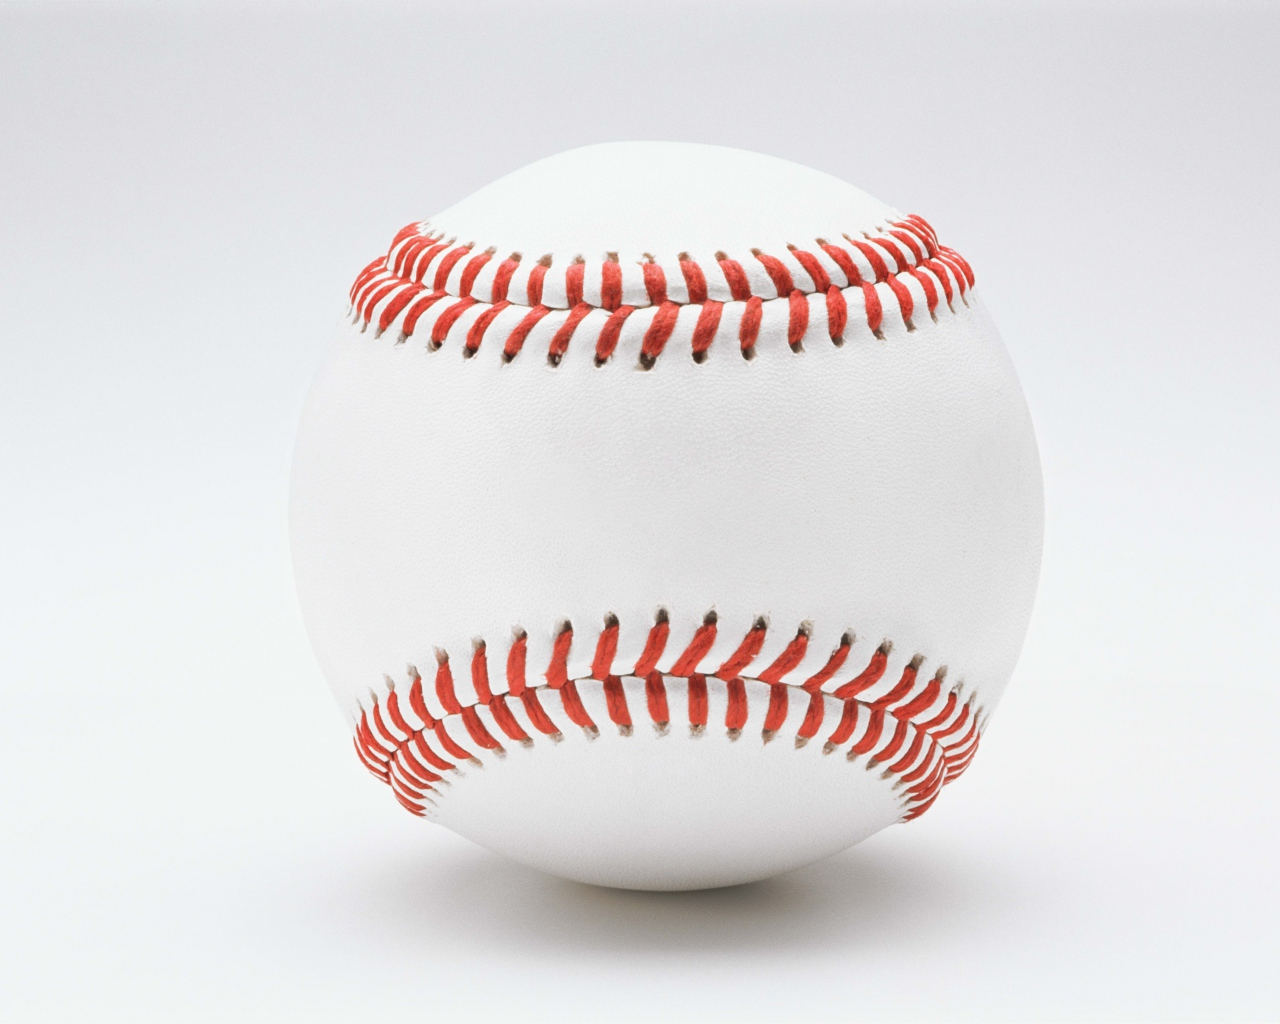 ball_white_background_baseball_79951_1280x1024